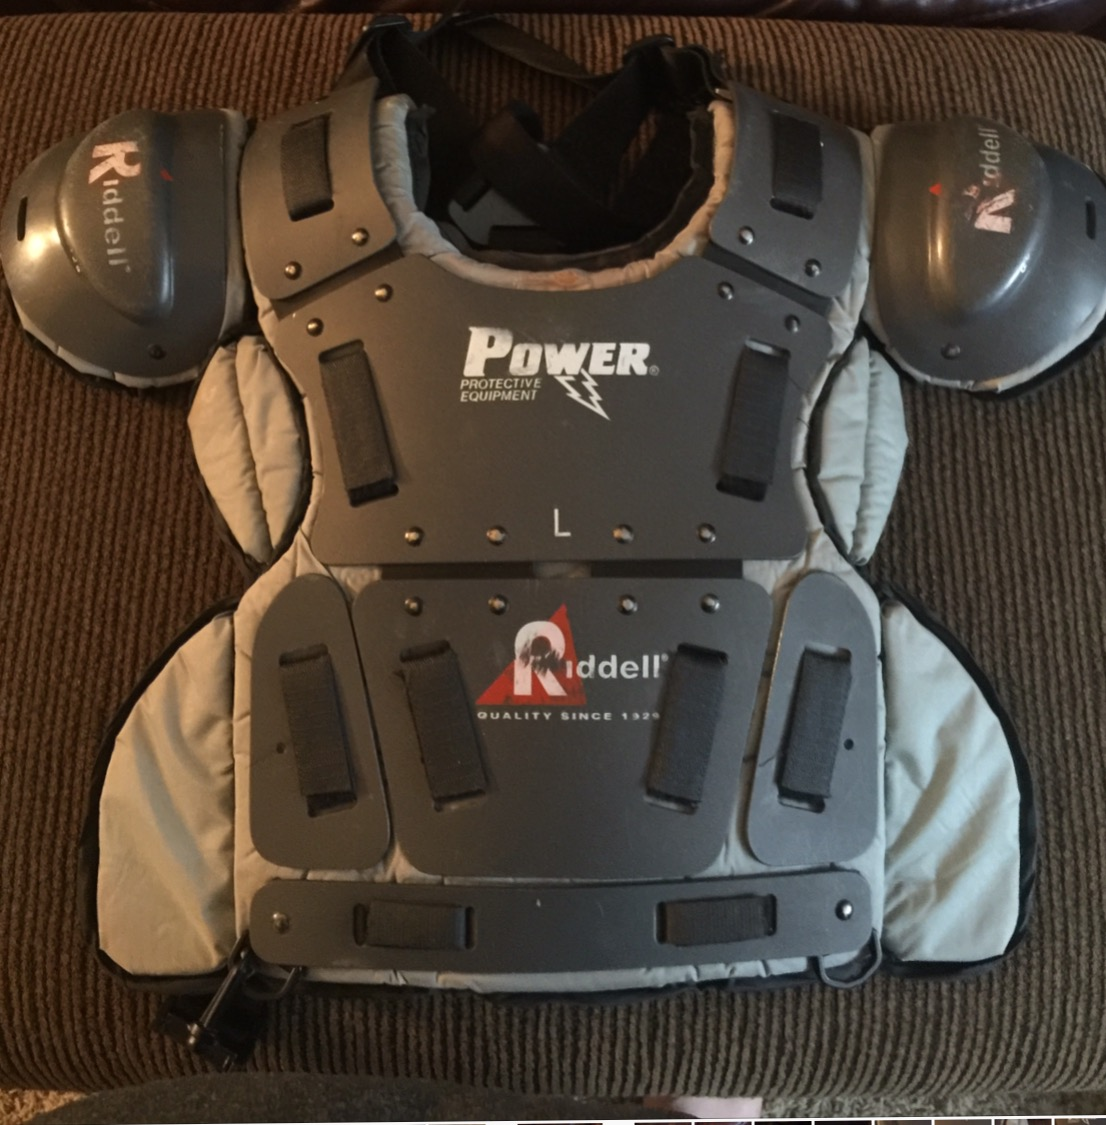 Riddell Power 2.0 - Umpire Equipment - Umpire-Empire